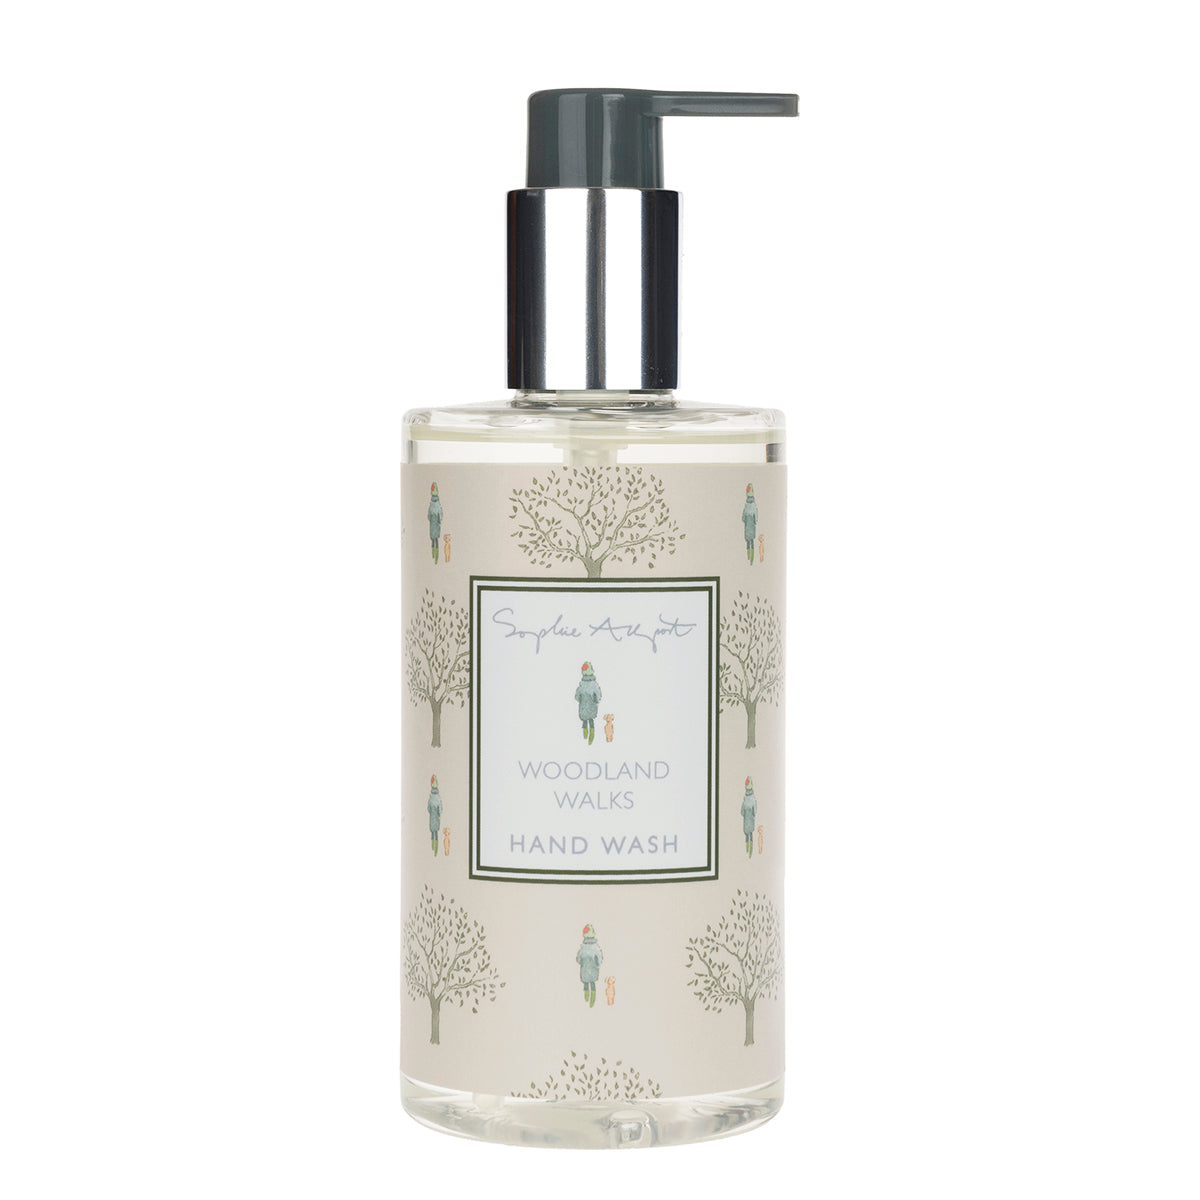 Woodland Walks Hand Wash